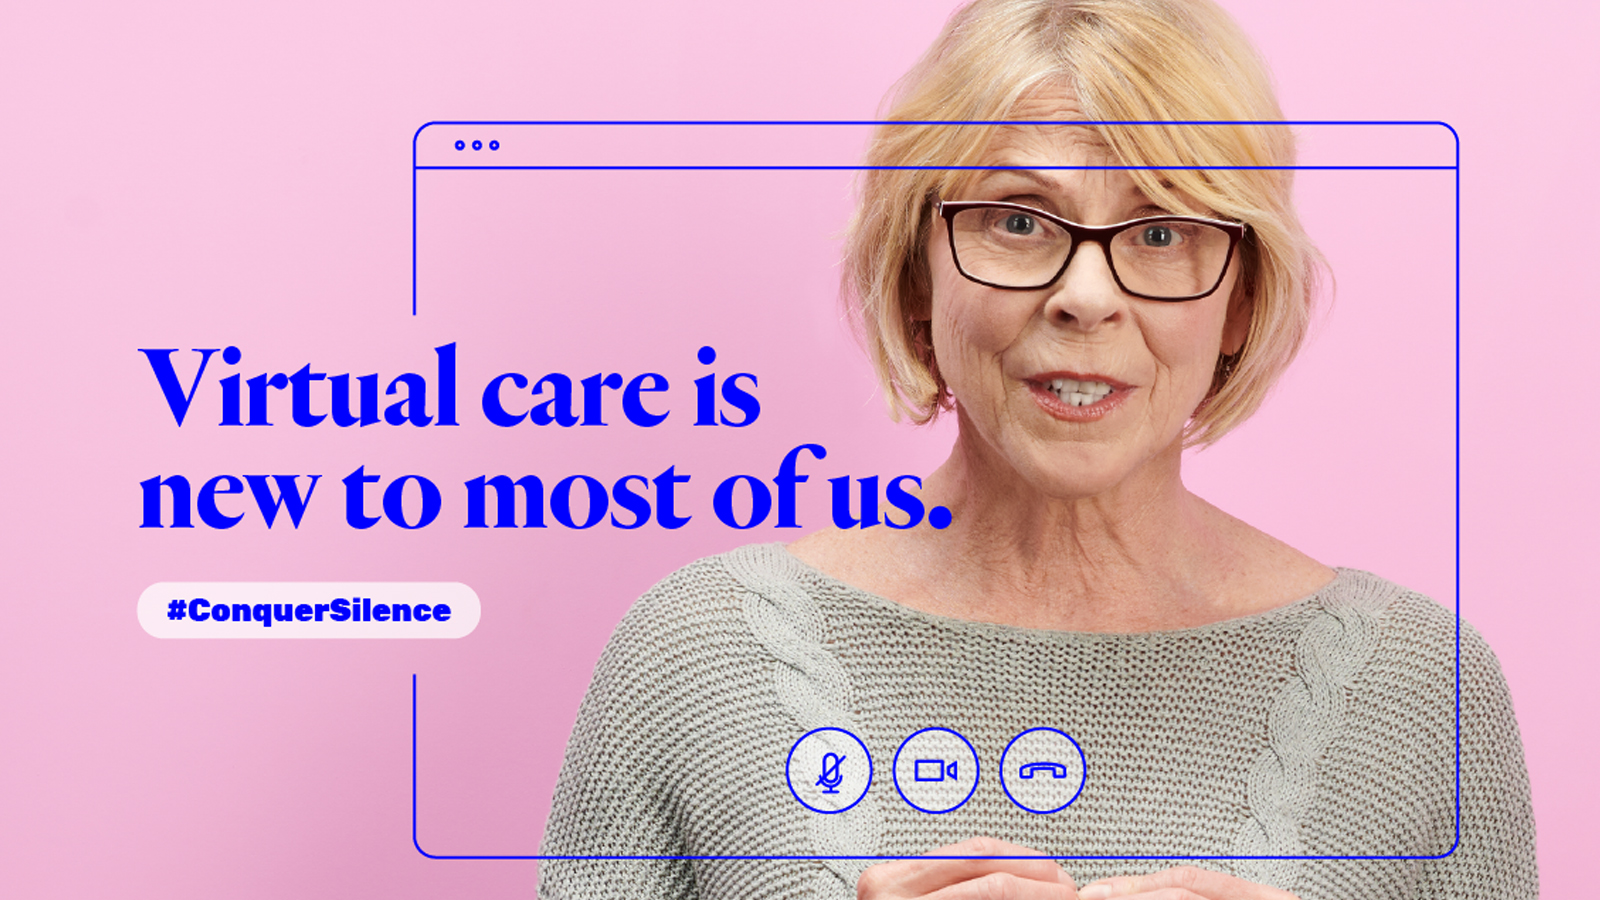 Virtual care is new to most of us - Patient